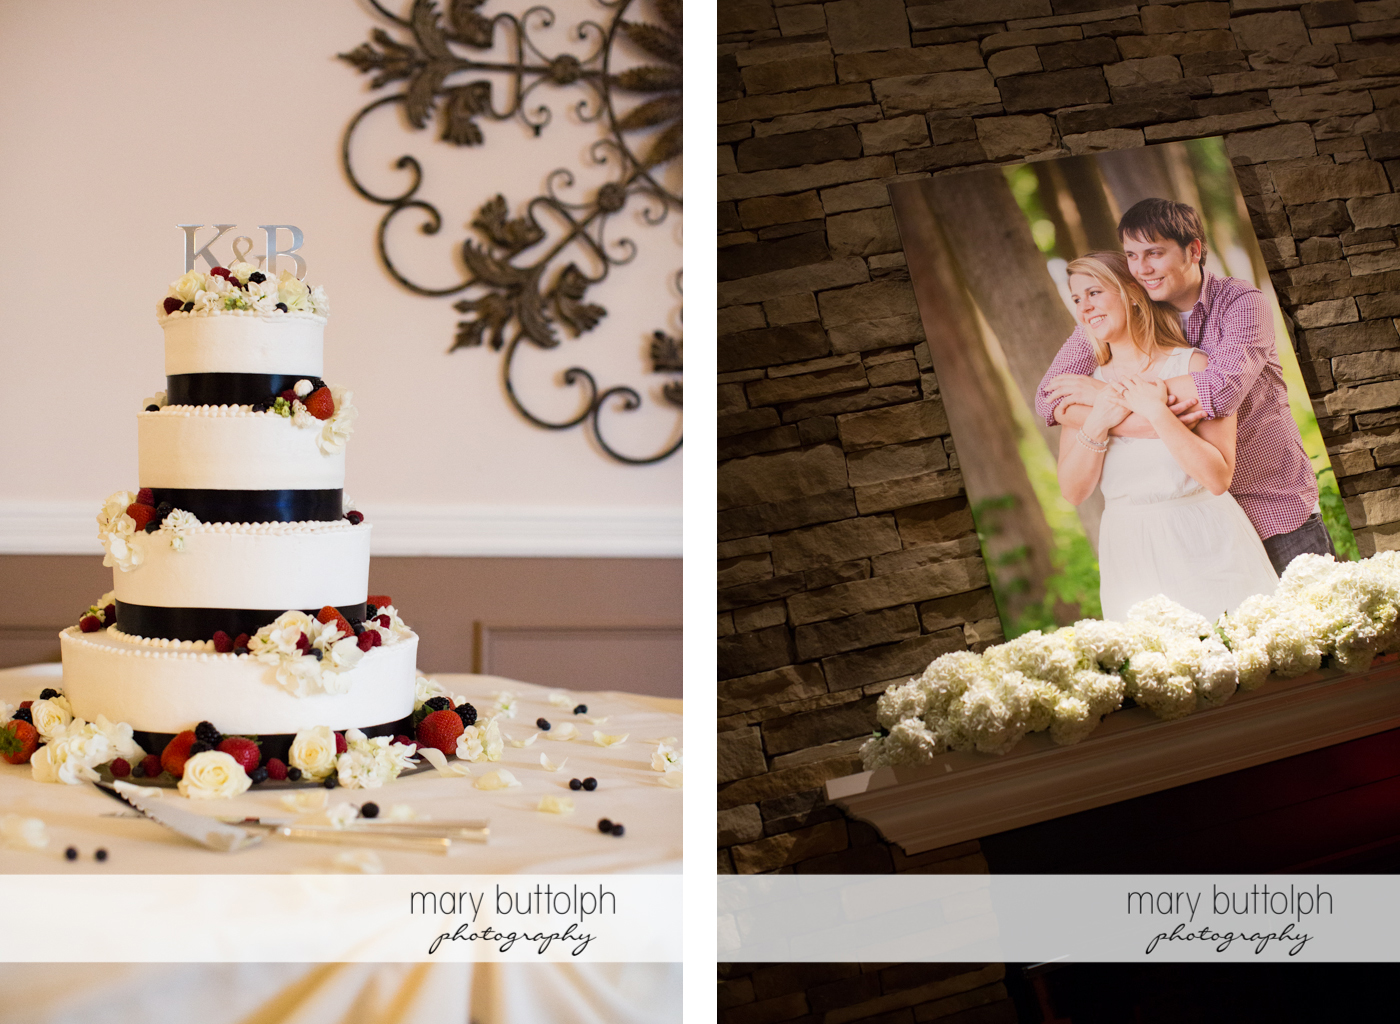 Couple's wedding cake and their photo at Traditions at the Links Wedding